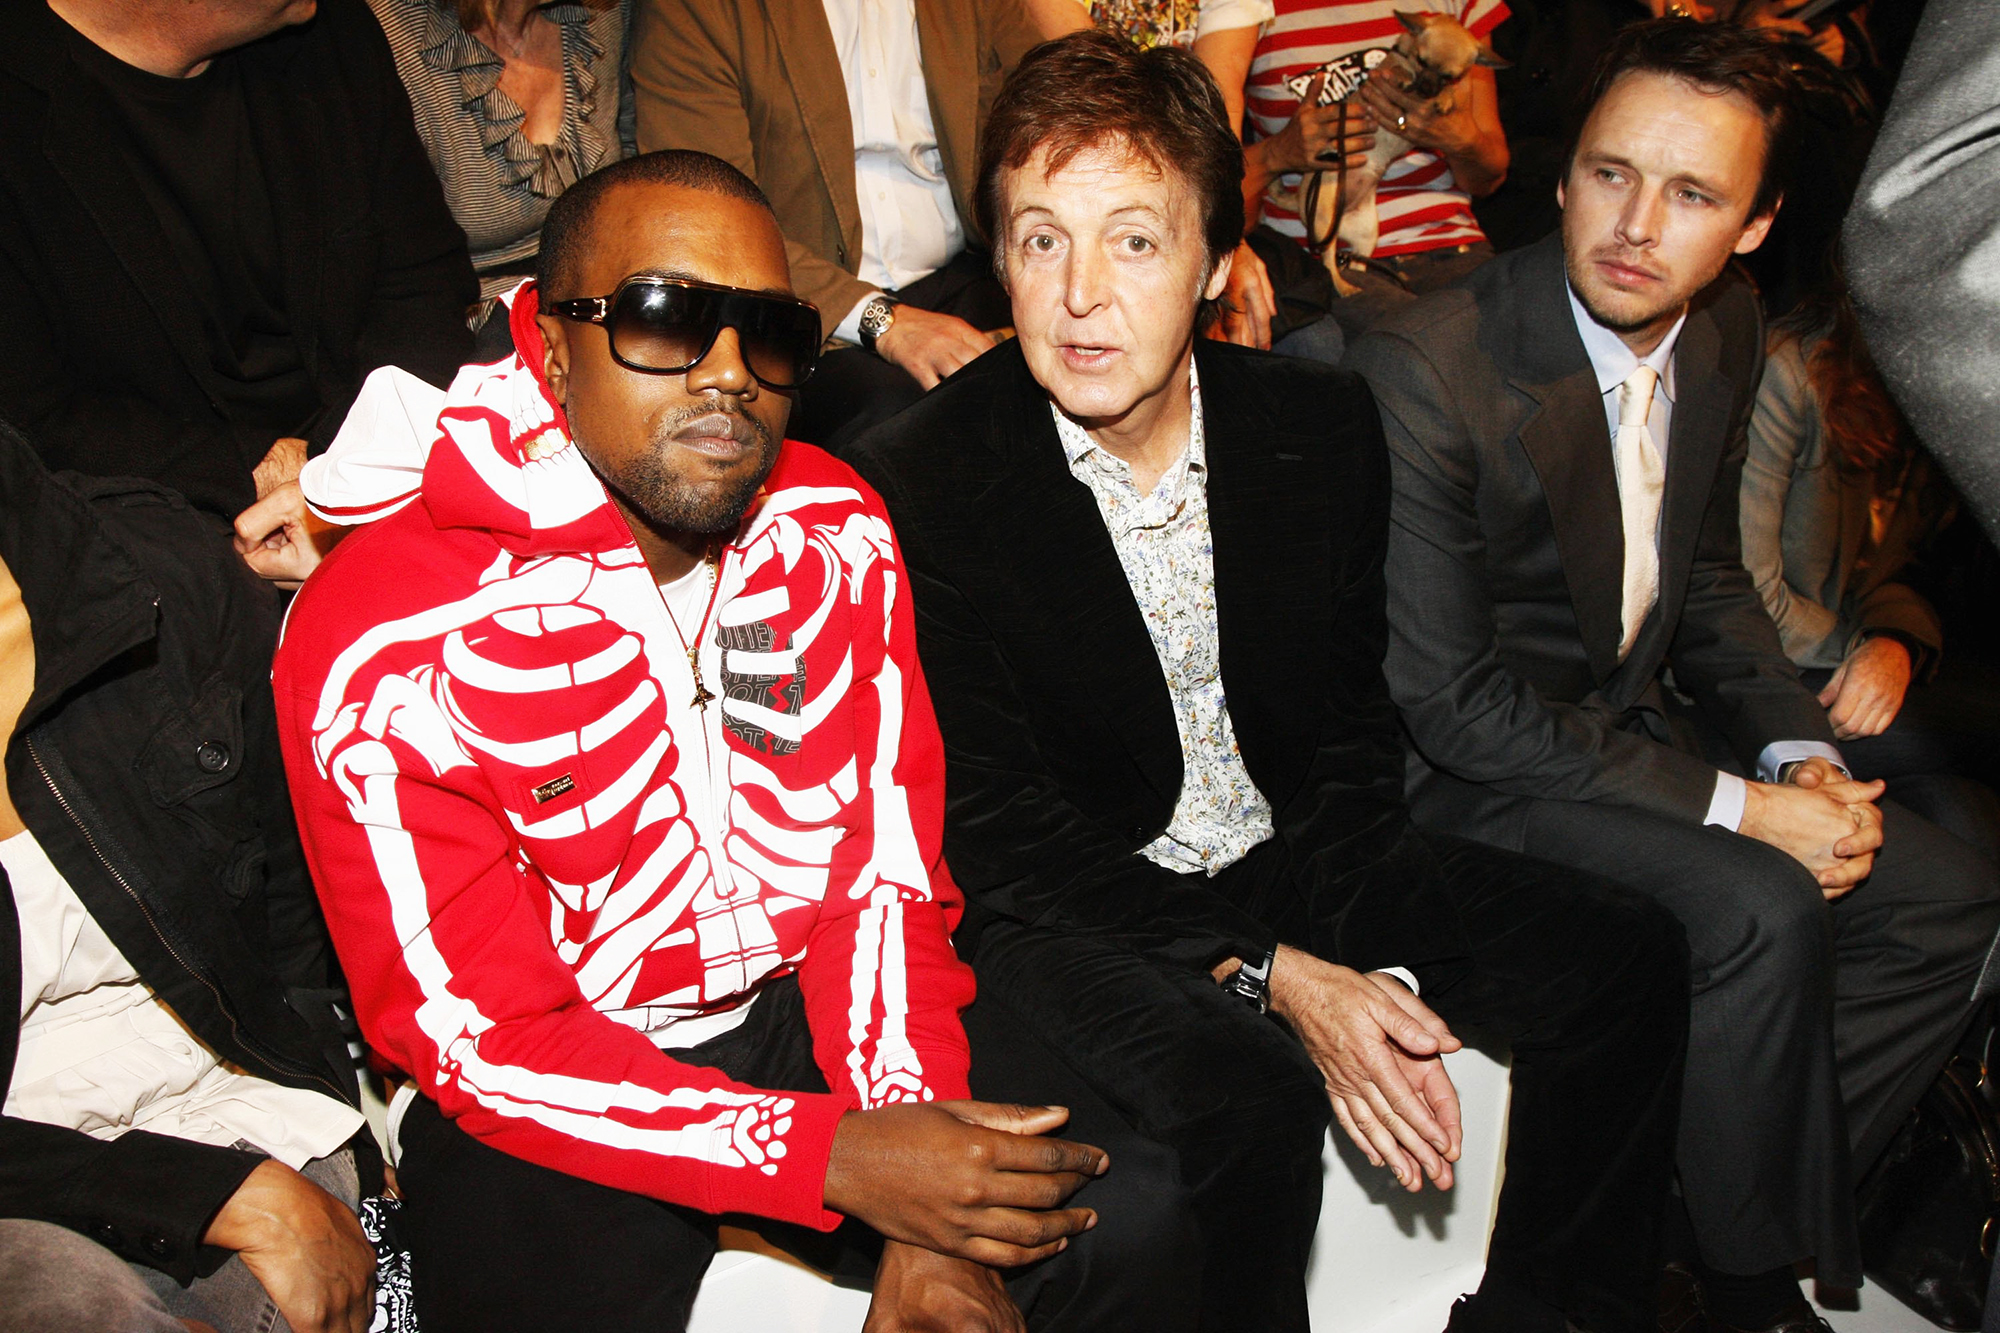 Kanye West and Paul McCartney attend the Stella McCartney Fashion Show, as part of Paris Fashion Week Spring/Summer 2007 in Paris, on Oct. 5, 2006.